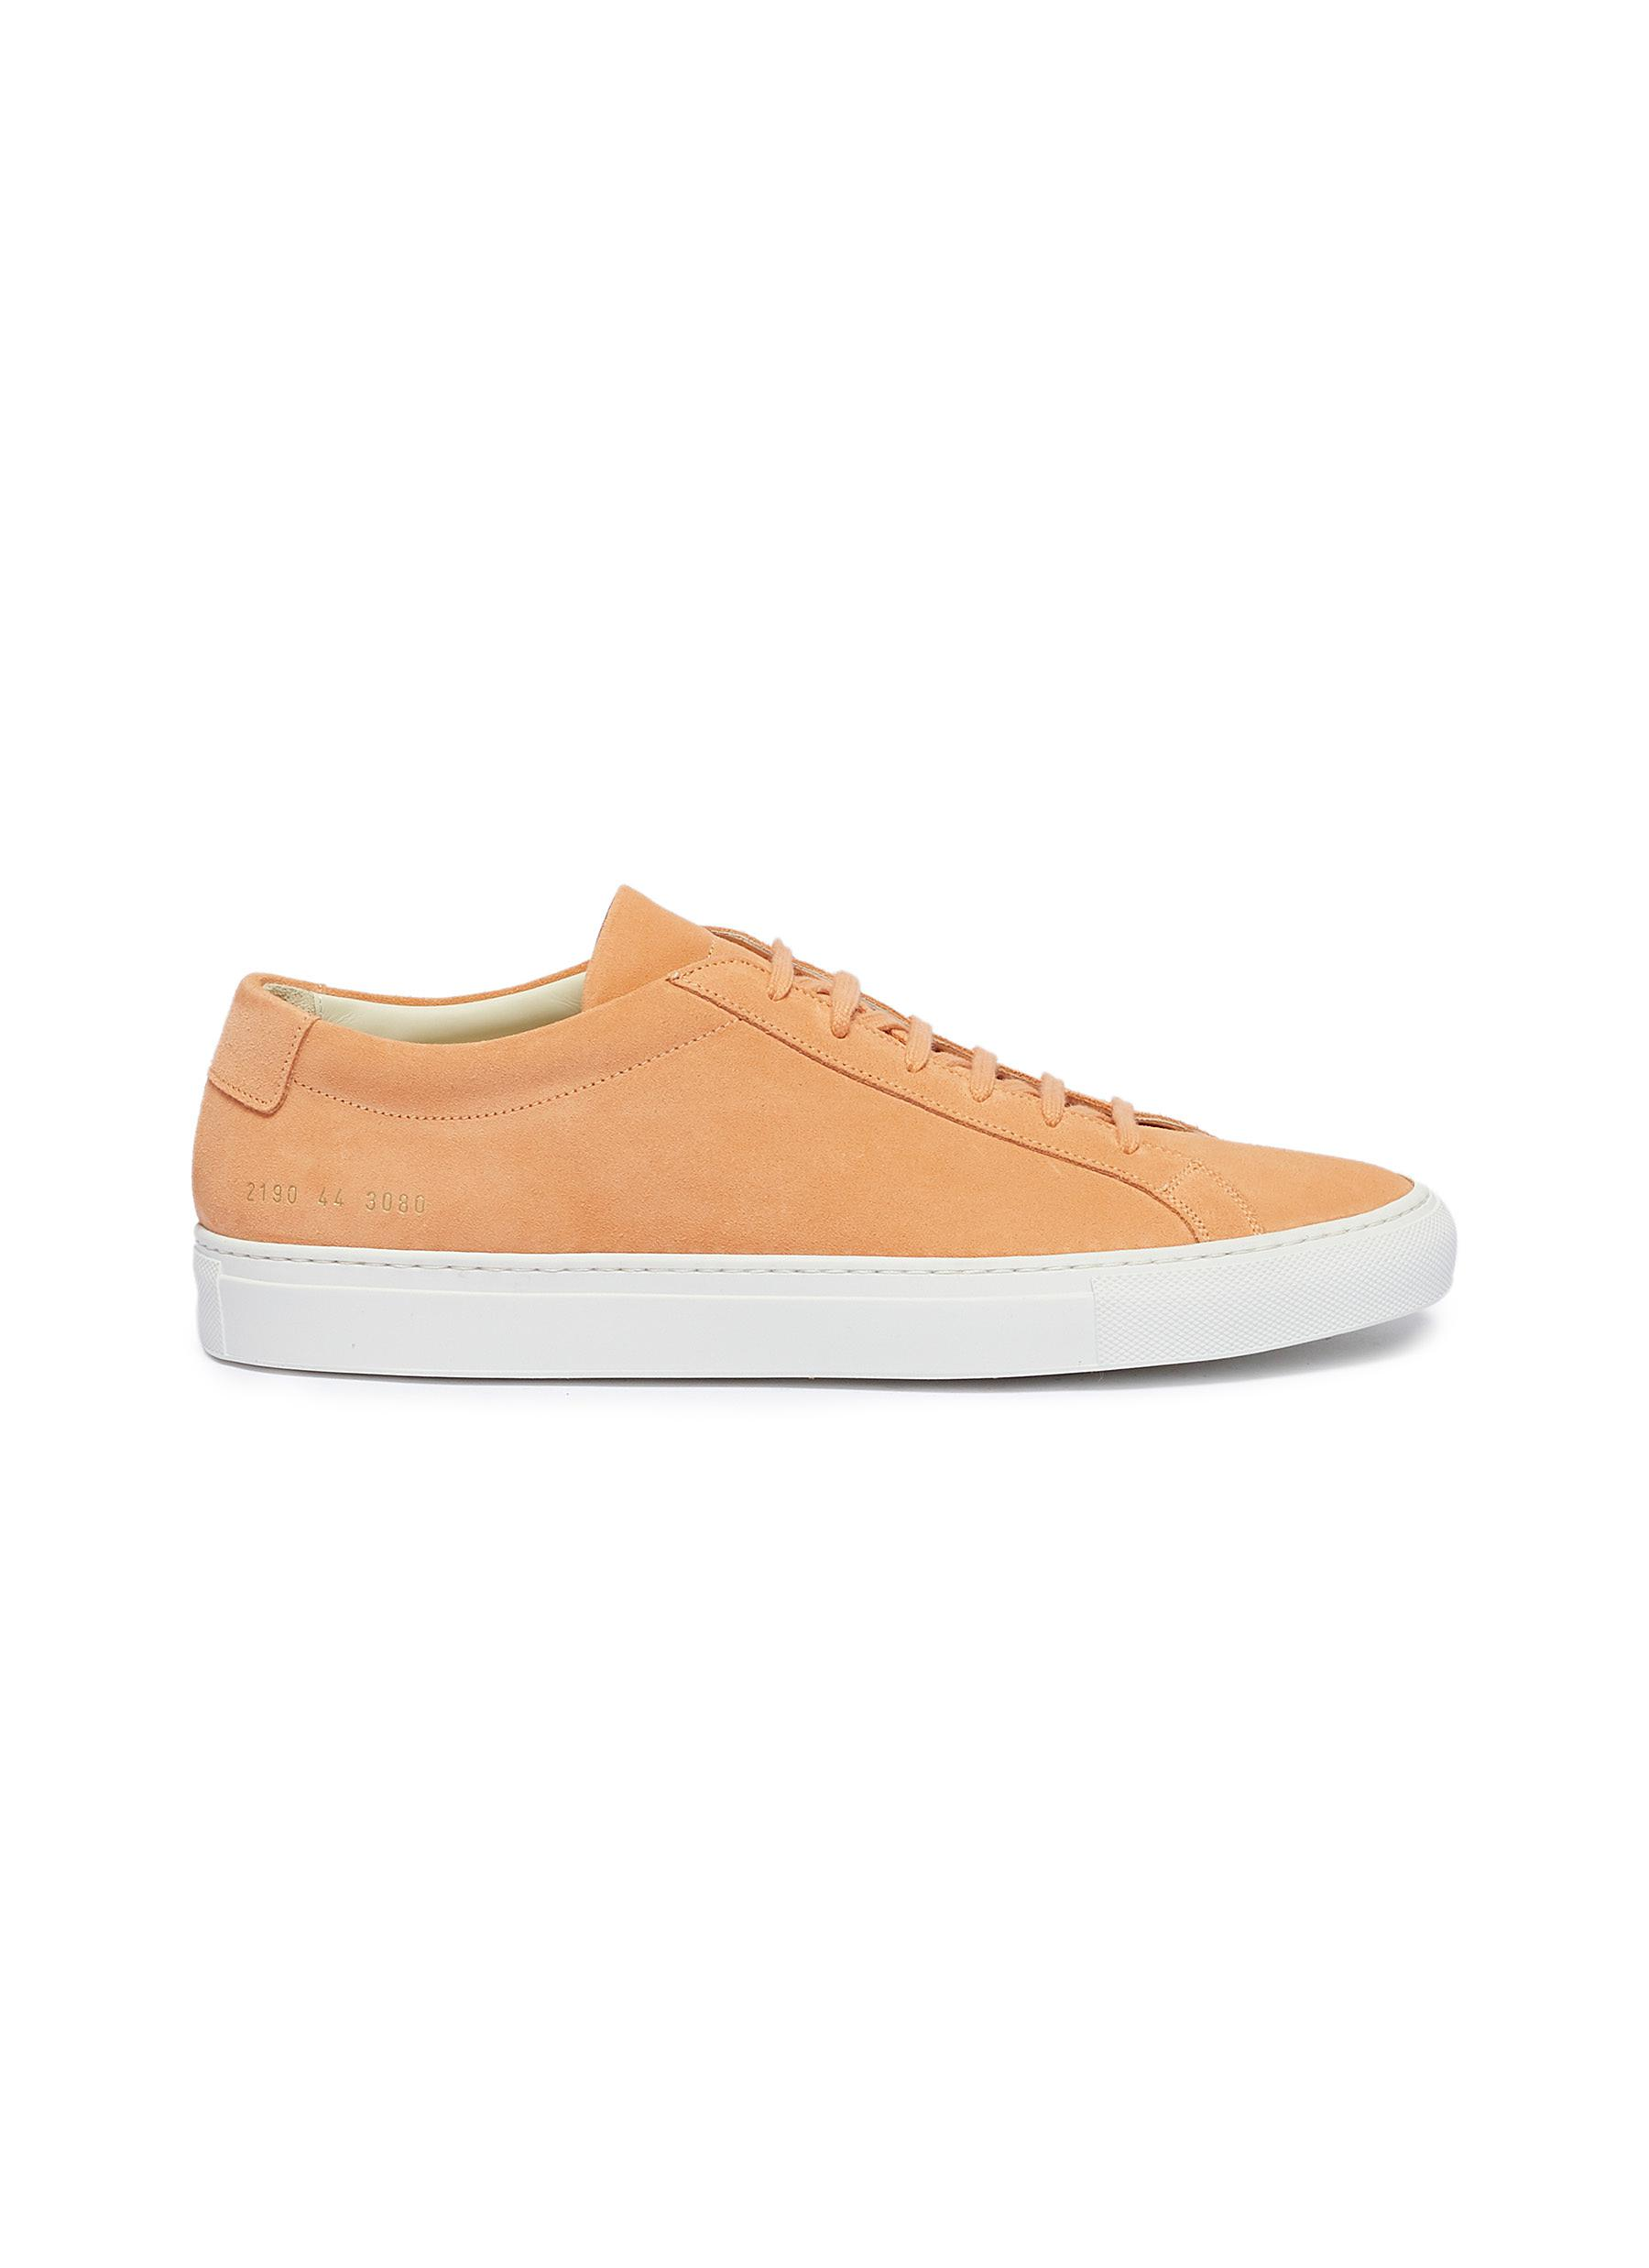 8511b4b4b491 Common Projects.  Original Achilles  suede sneakers